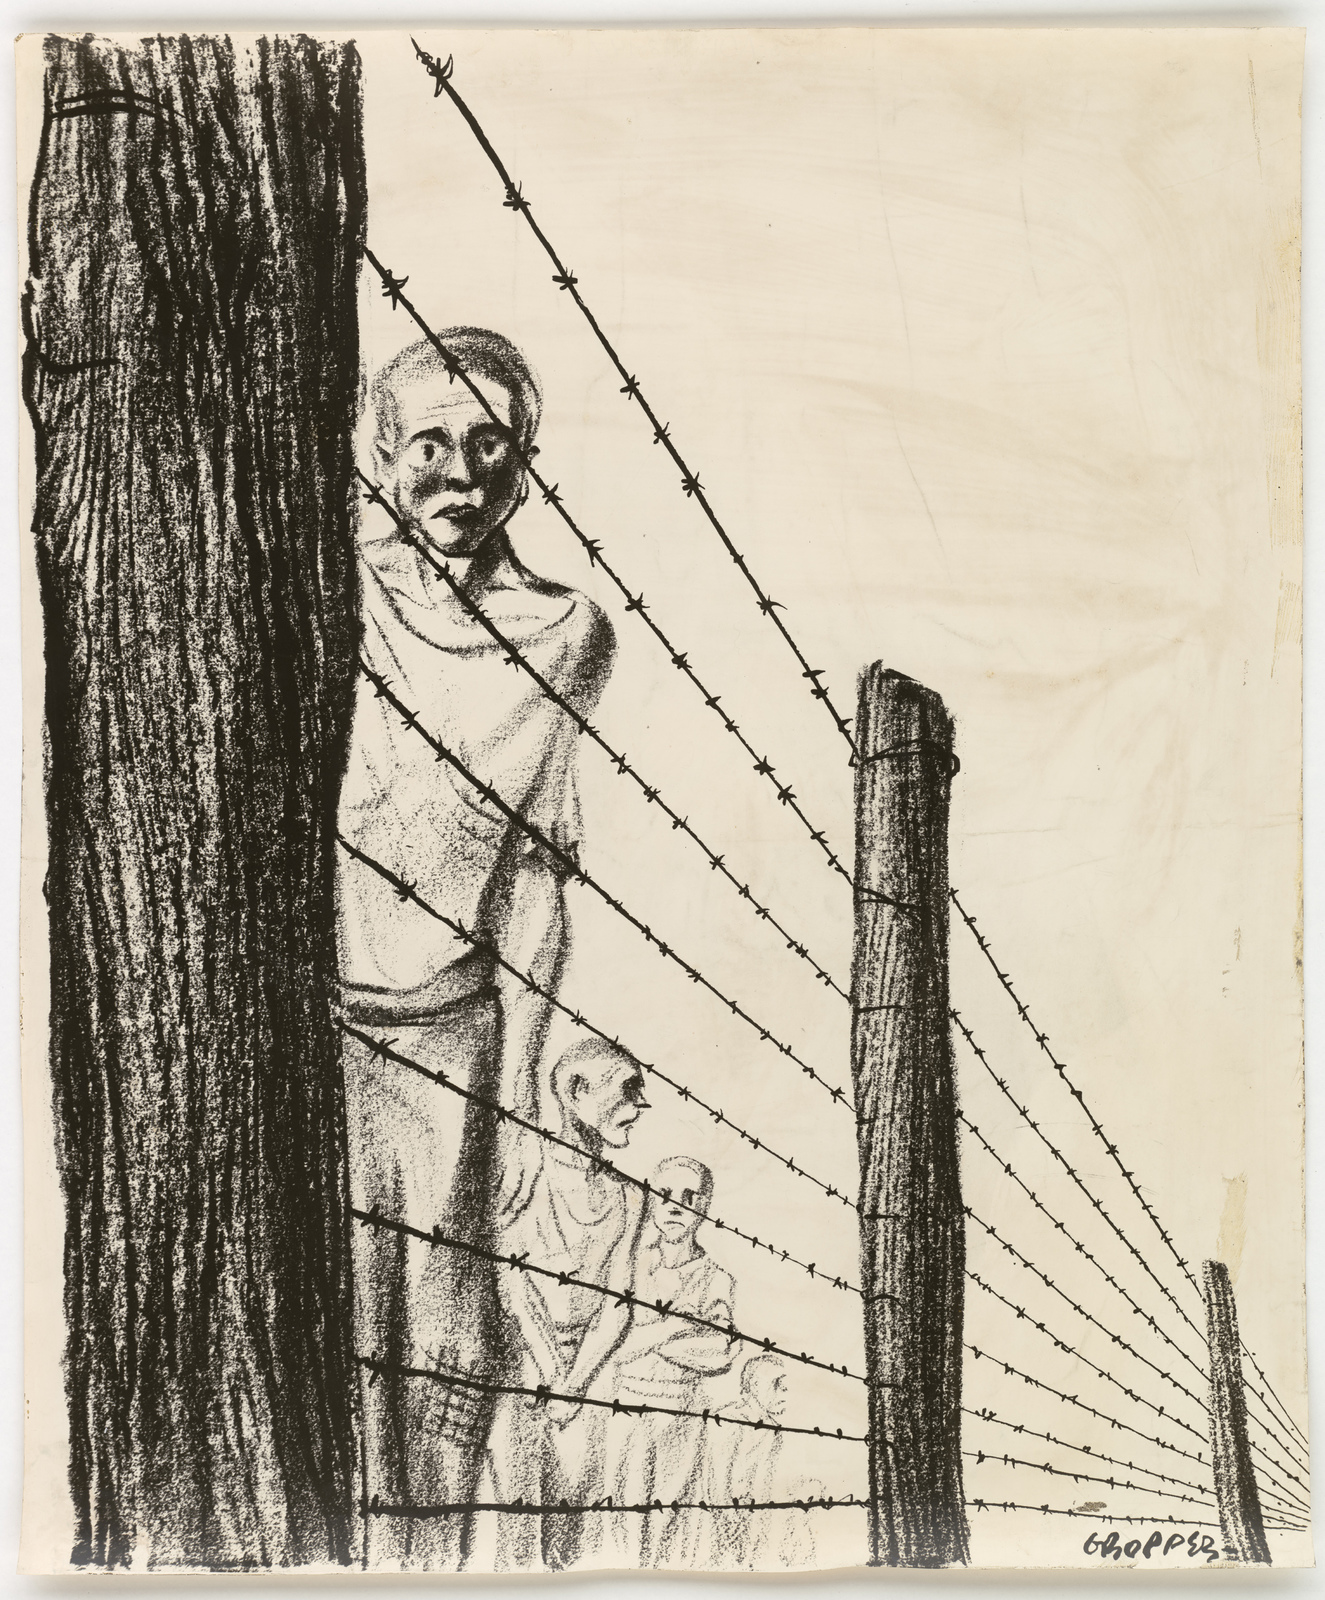 [Men standing behind barbed wire.] [Gropper]